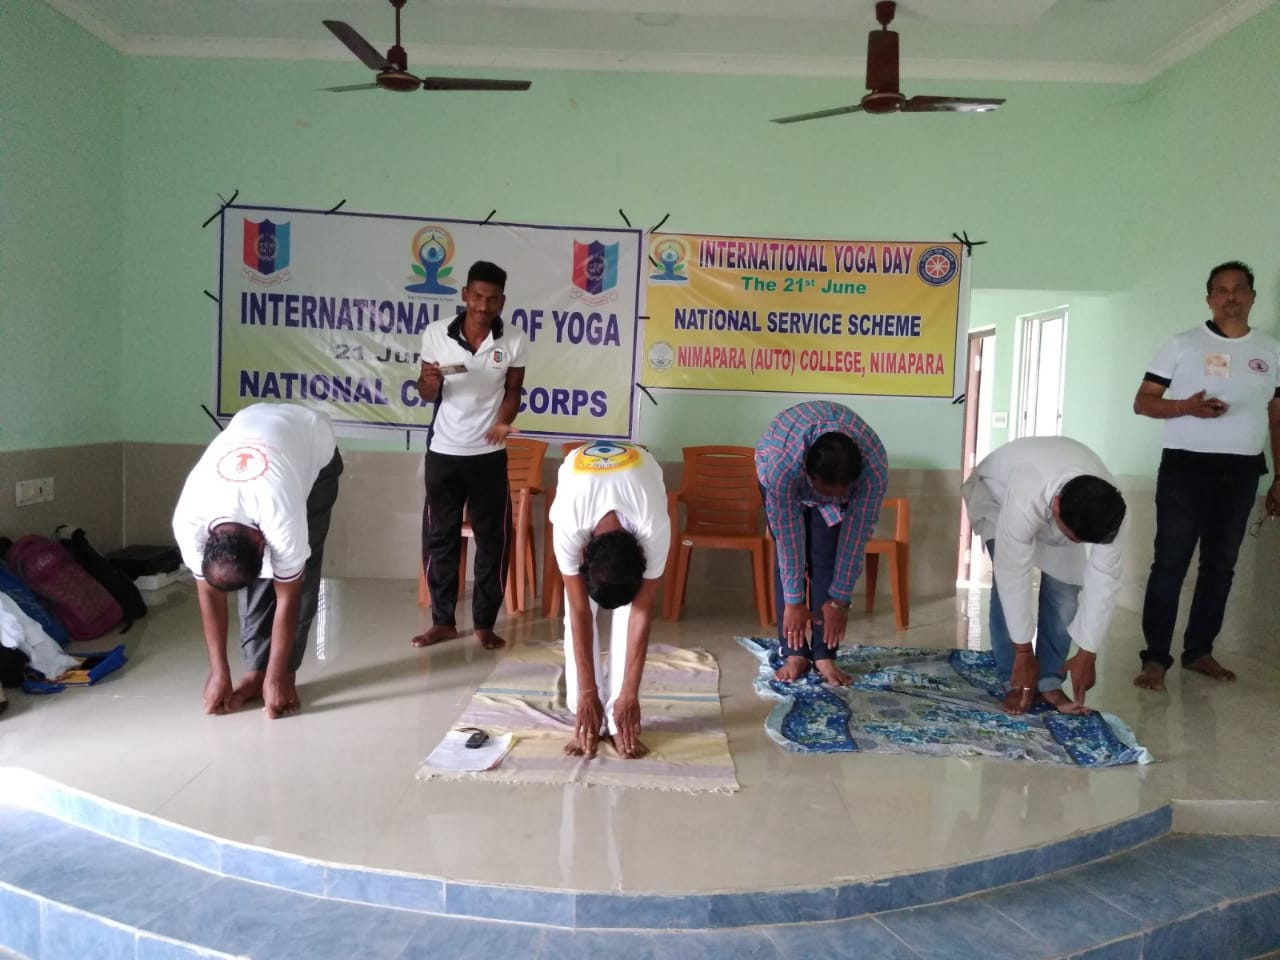 International Day of Yoga by Yoga Guru Gauranga Sahoo along with Staff